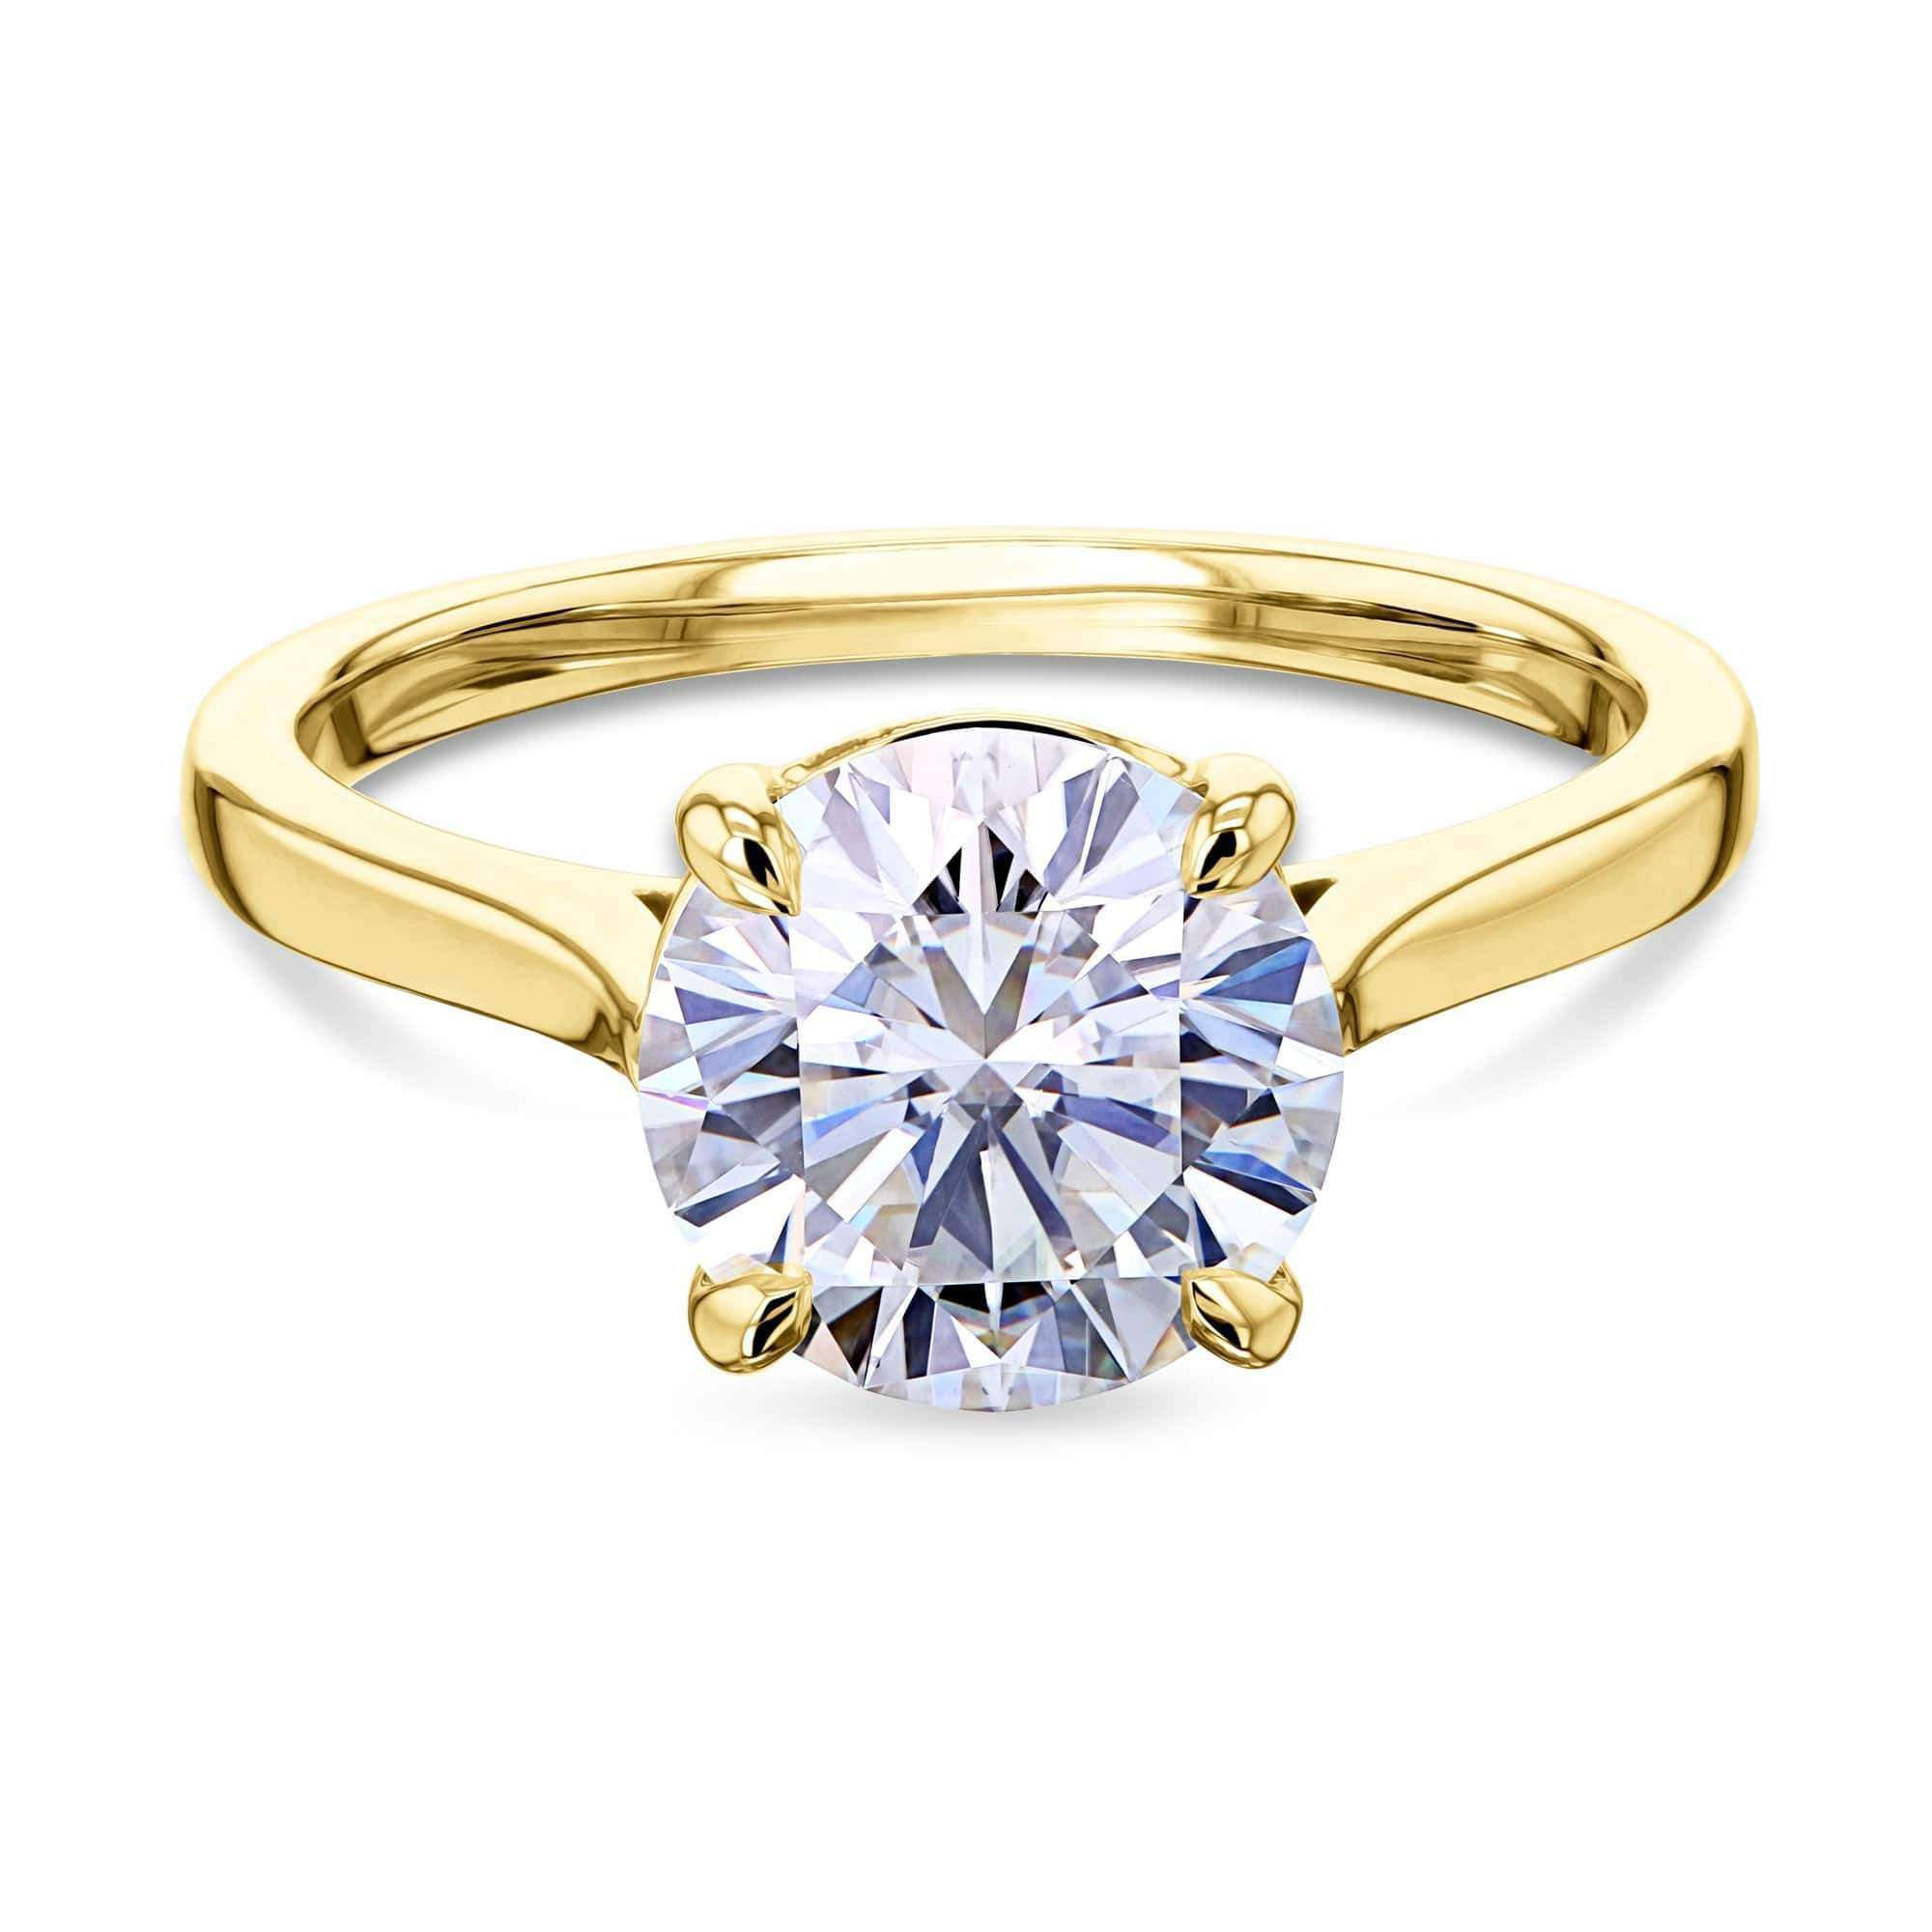 Coupons 1.9ct Round Moissanite Solitaire Ring - yellow-gold 10.5 Kobelli H-I